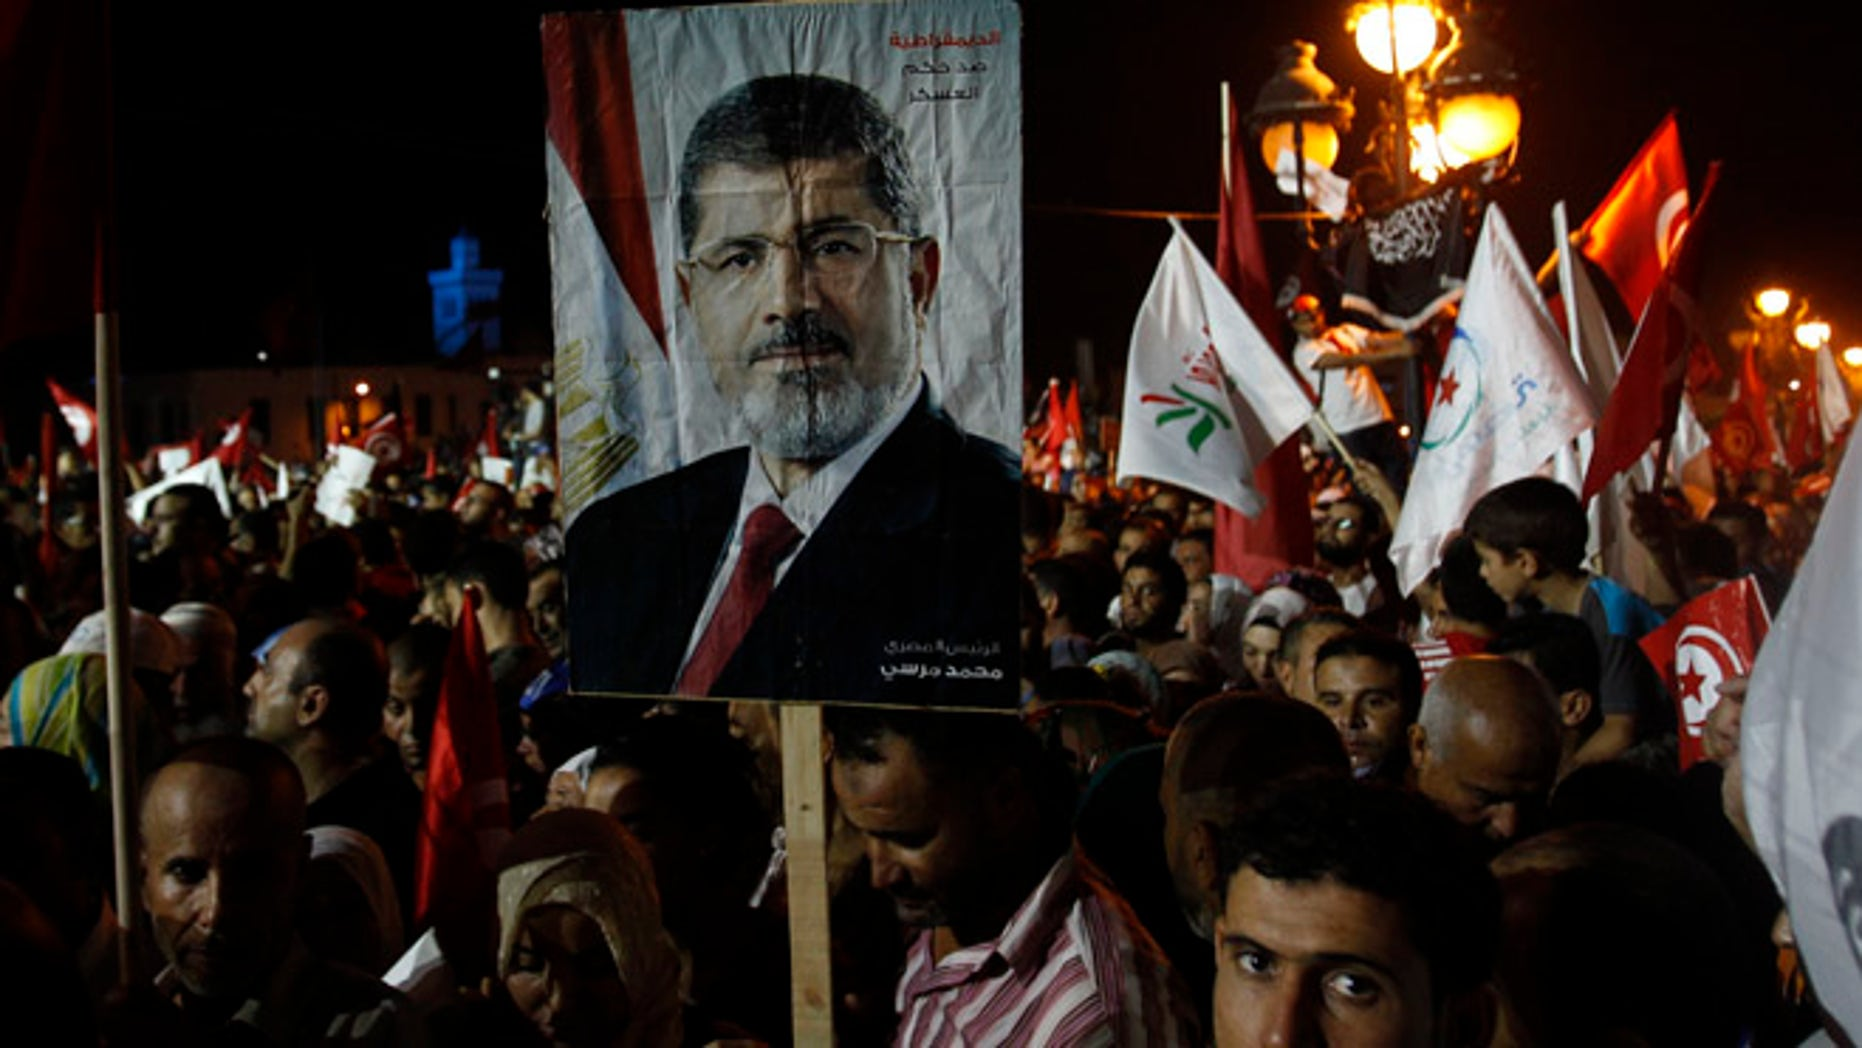 Aug 3, 2013: Supporters of the Islamist Ennahda movement hold a portrait of ousted Egyptian President Mohamed Morsi during a demonstration at Kasbah Square in Tunis.